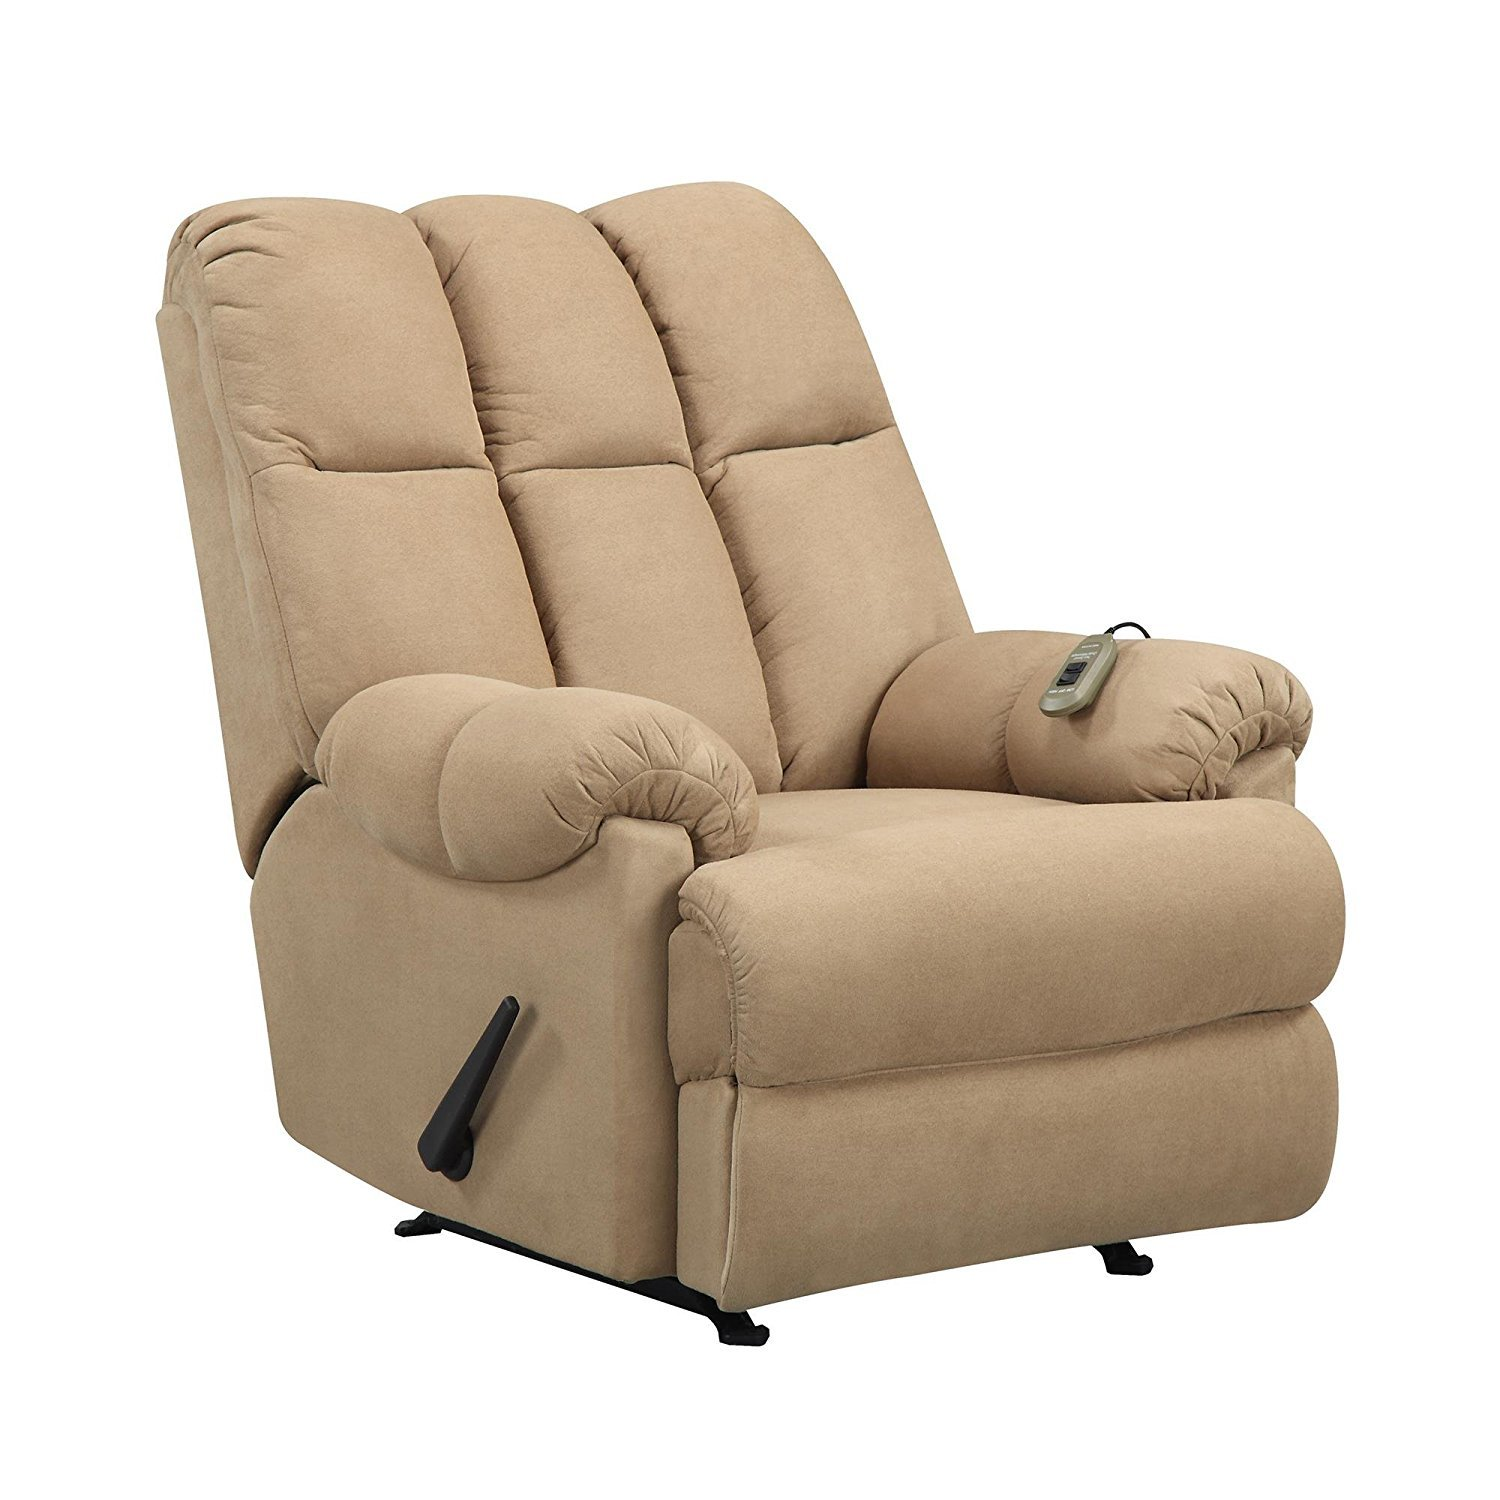 living rooms chairs. Dorel Living Padded Dual Massage Recliner  Tan Room Chairs Amazon com